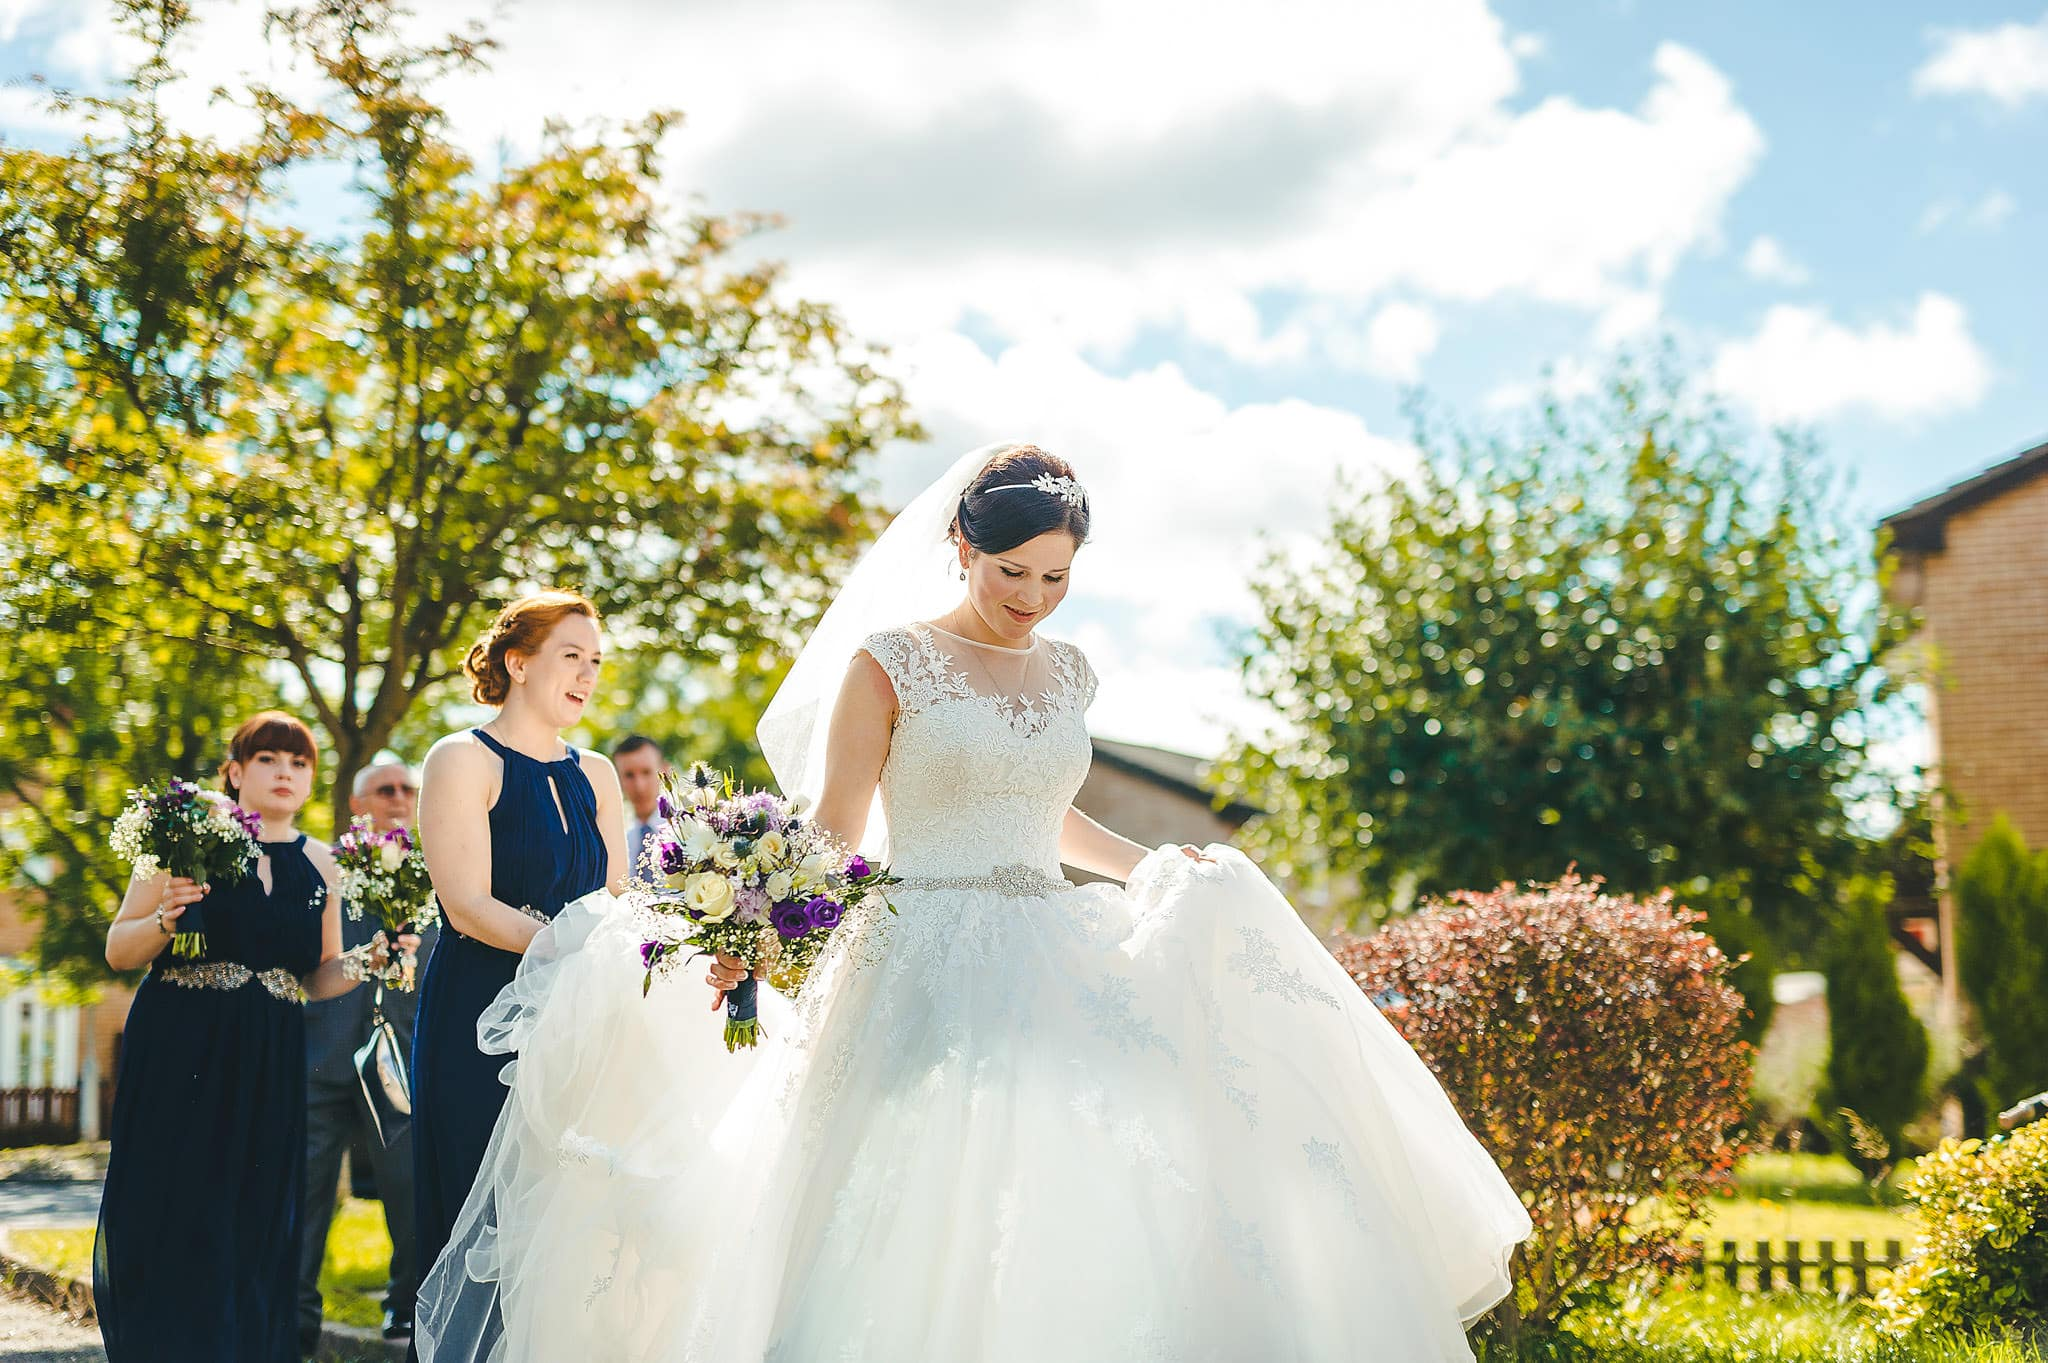 munstone-house-hereford-wedding-photography (29)